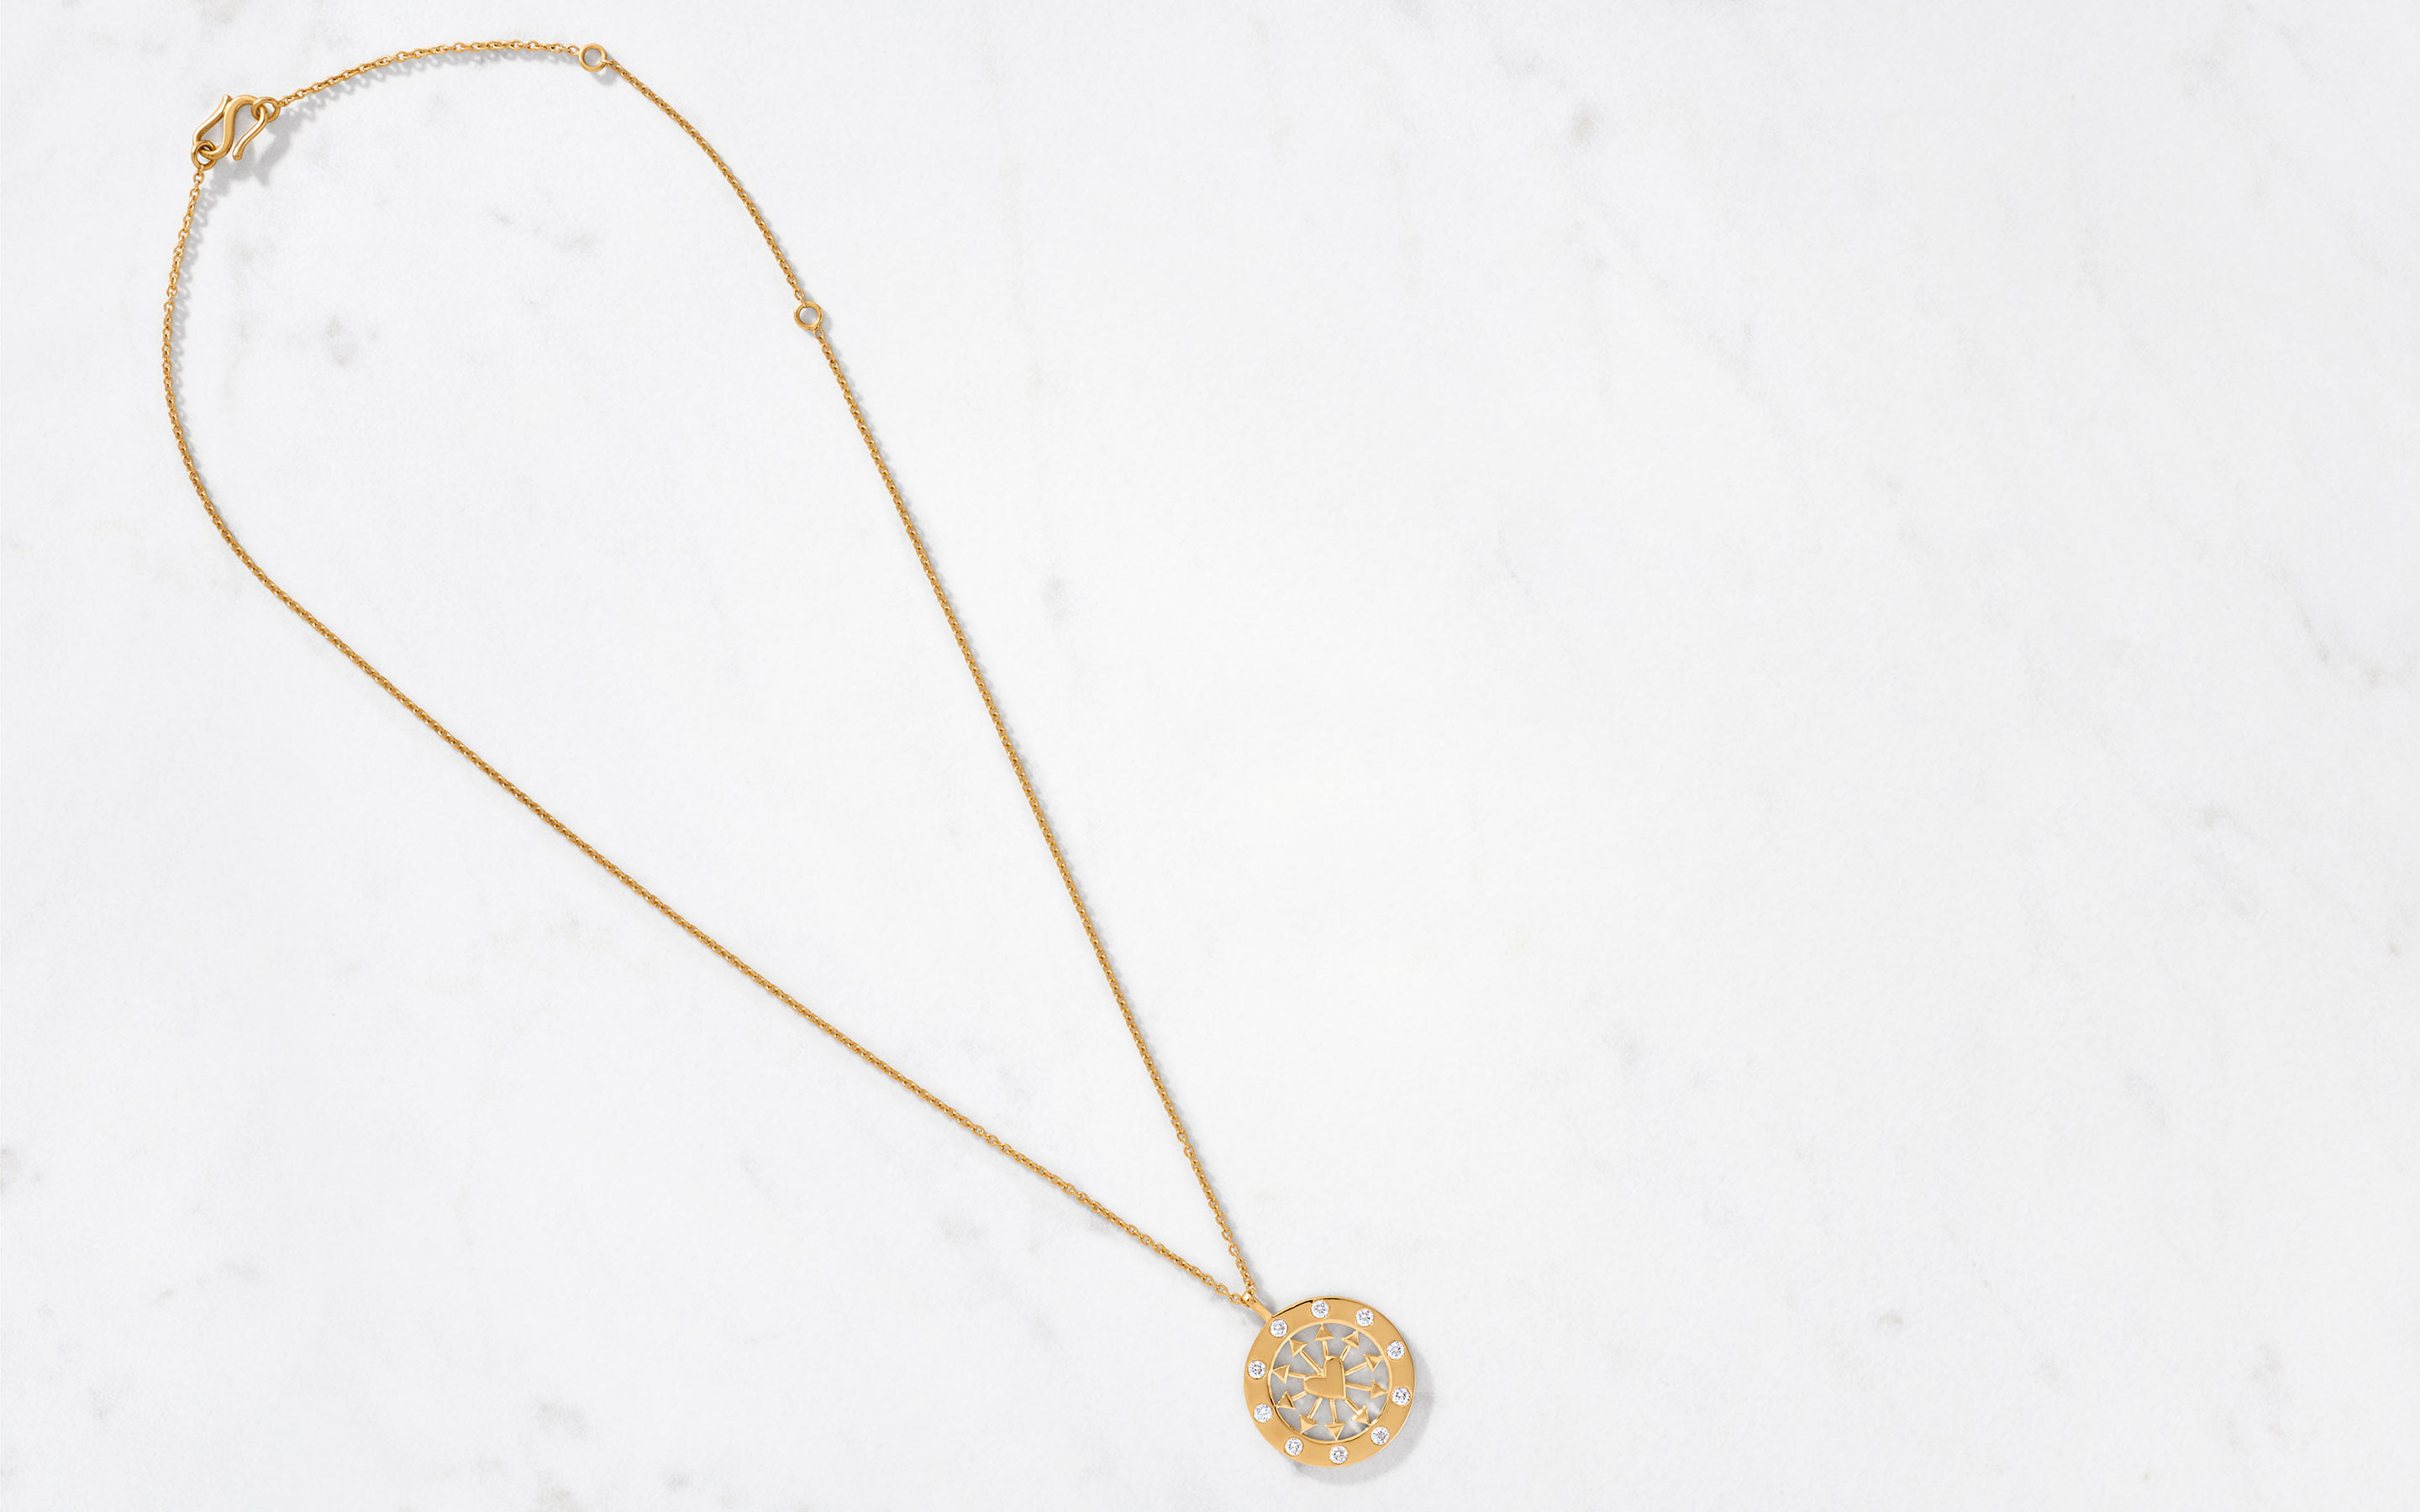 bright 22 karat gold necklace with medallion in heart and arrow shape including diamonds